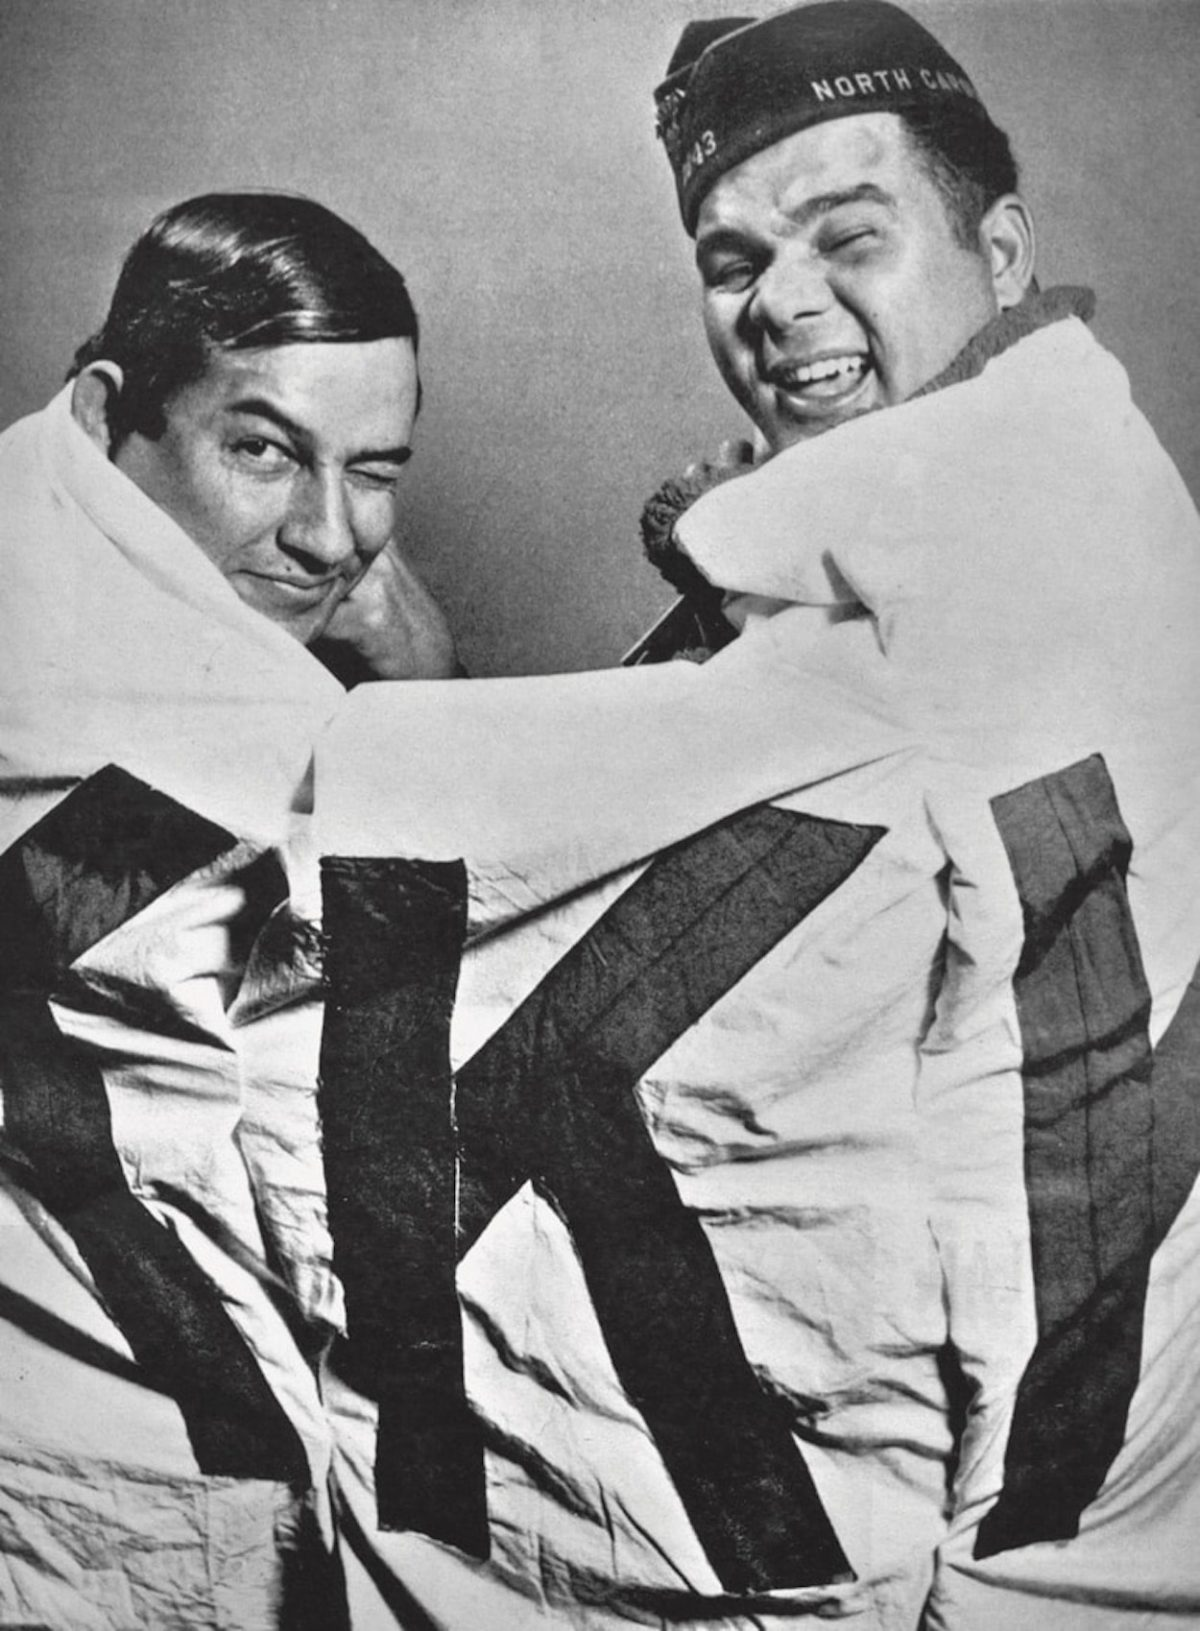 Charlie Warriax (left) and Simeon Oxendine (right) bear a captured KKK banner. Courtesy of the Charlotte Observer Photograph Collection, Public Library of Charlotte and Mecklenburg County.